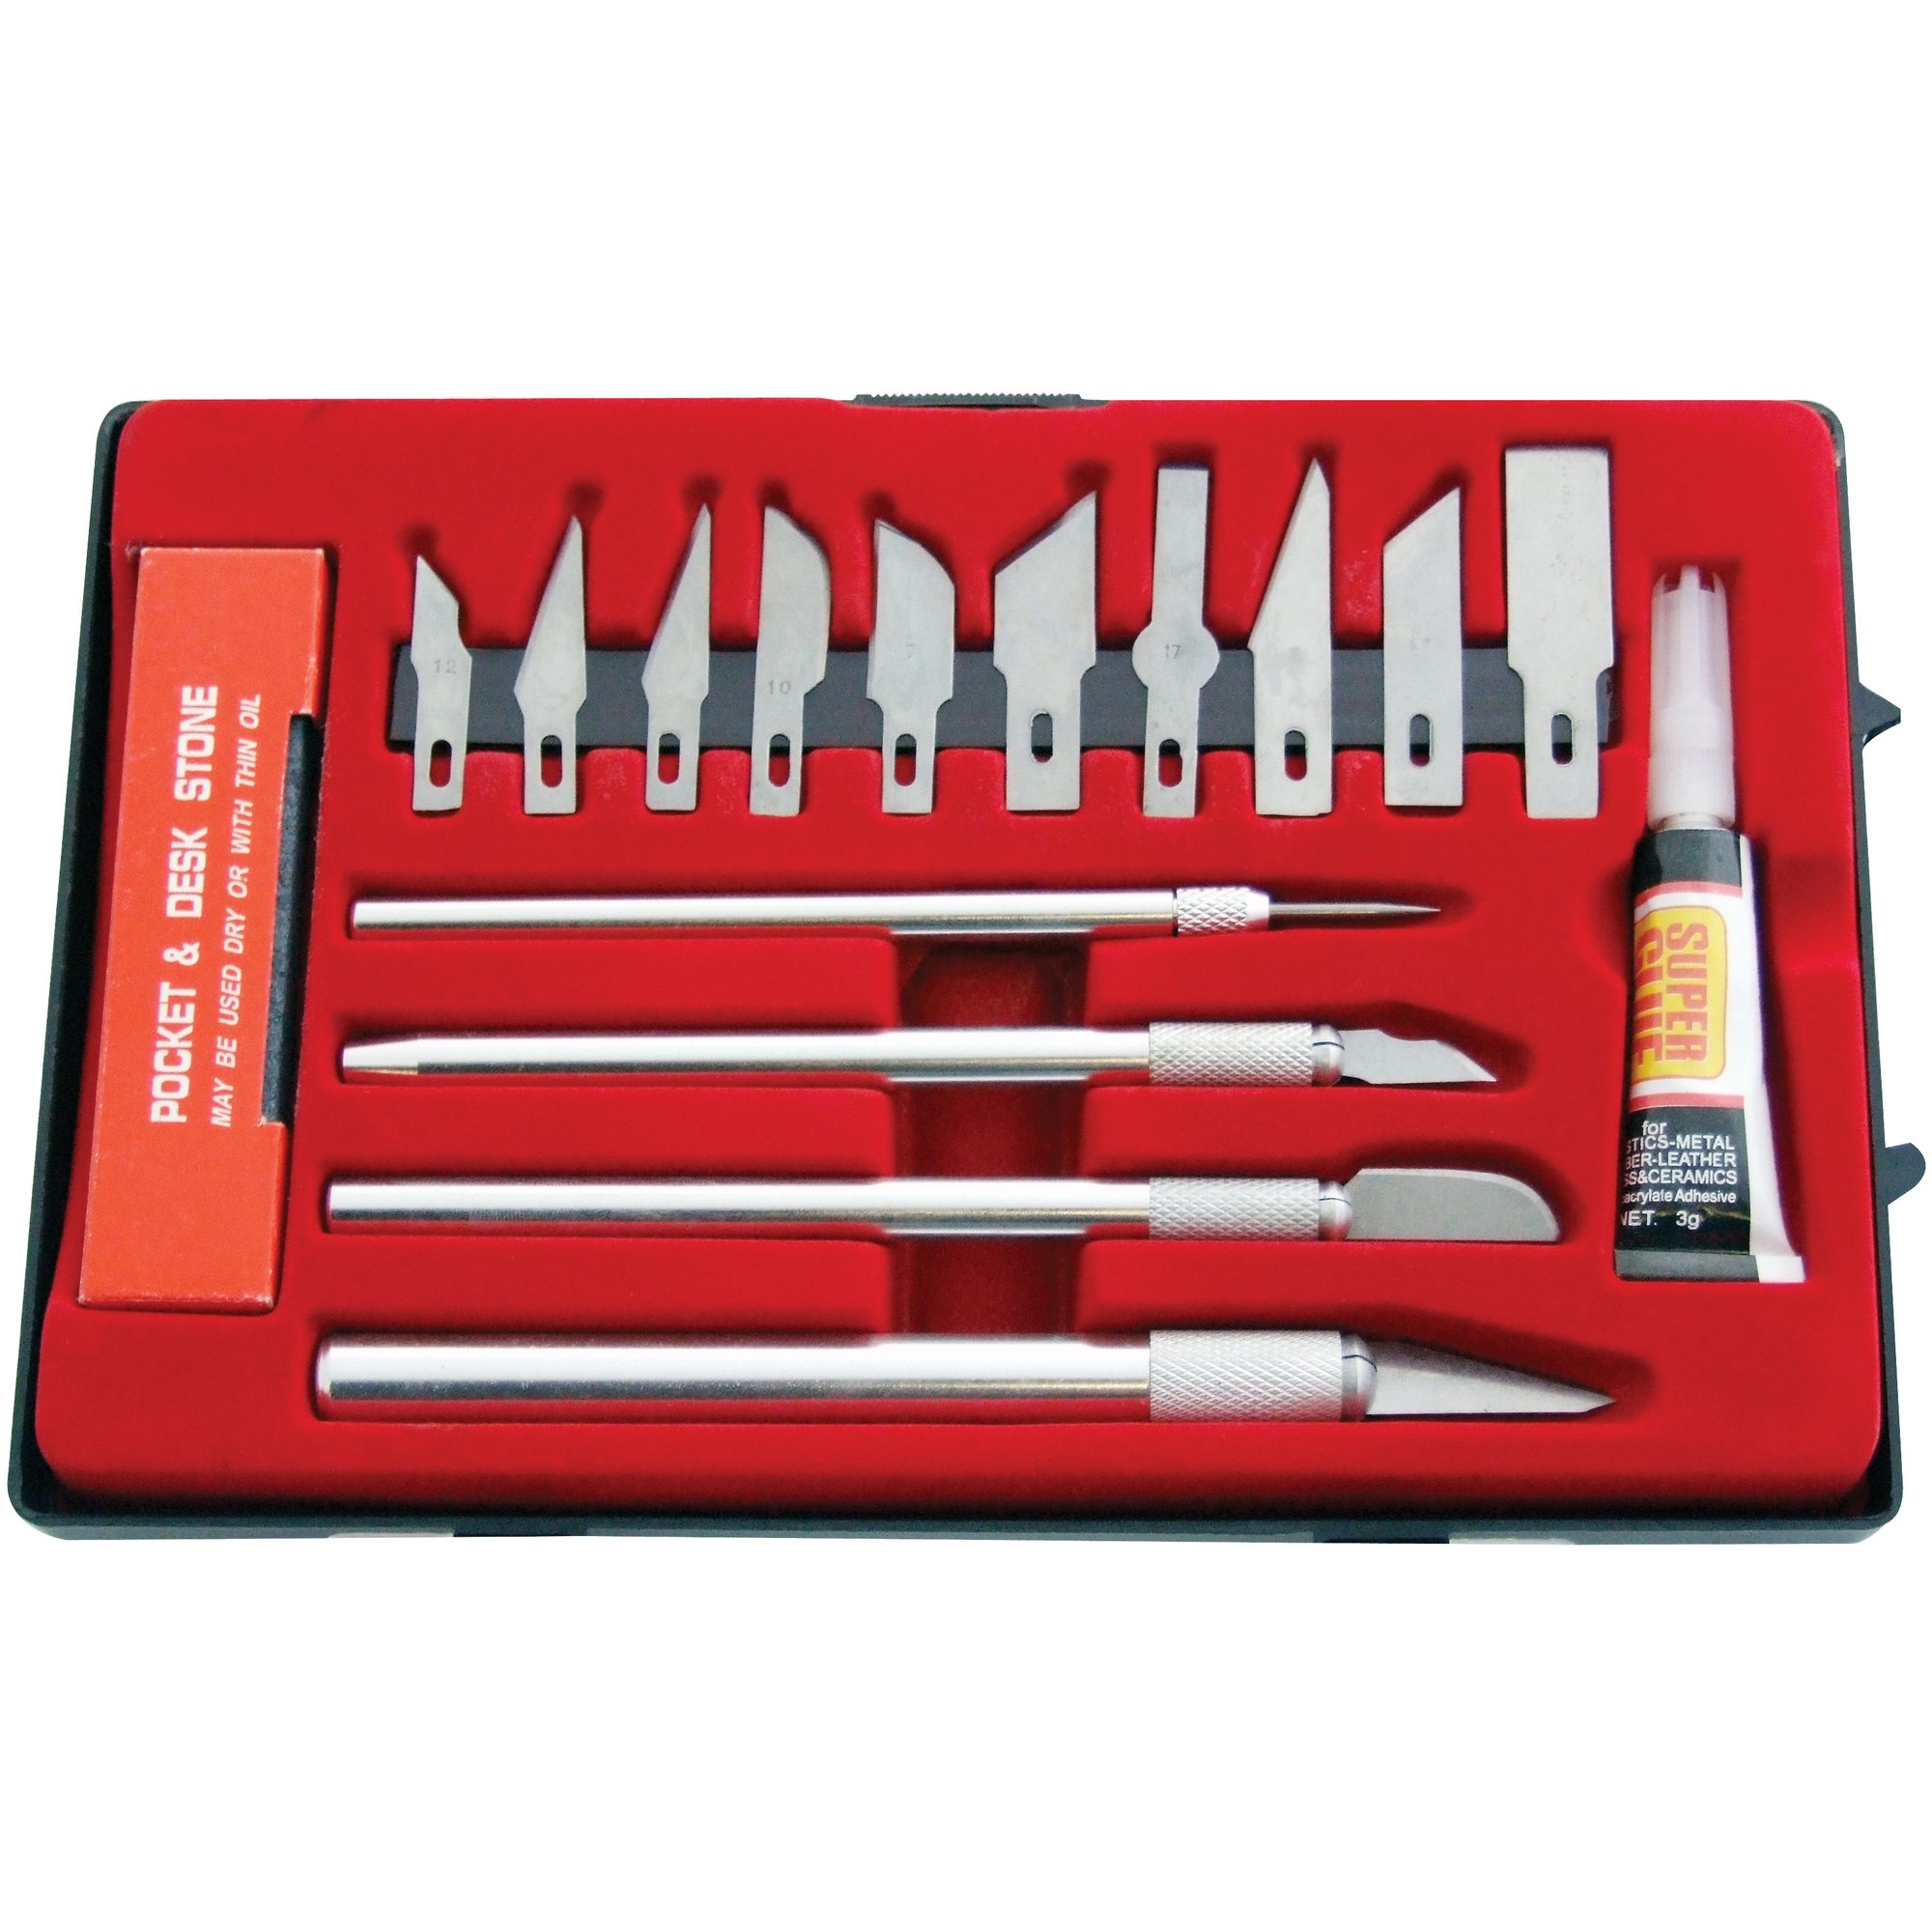 Image of 17-Piece Hobby Knife Kit